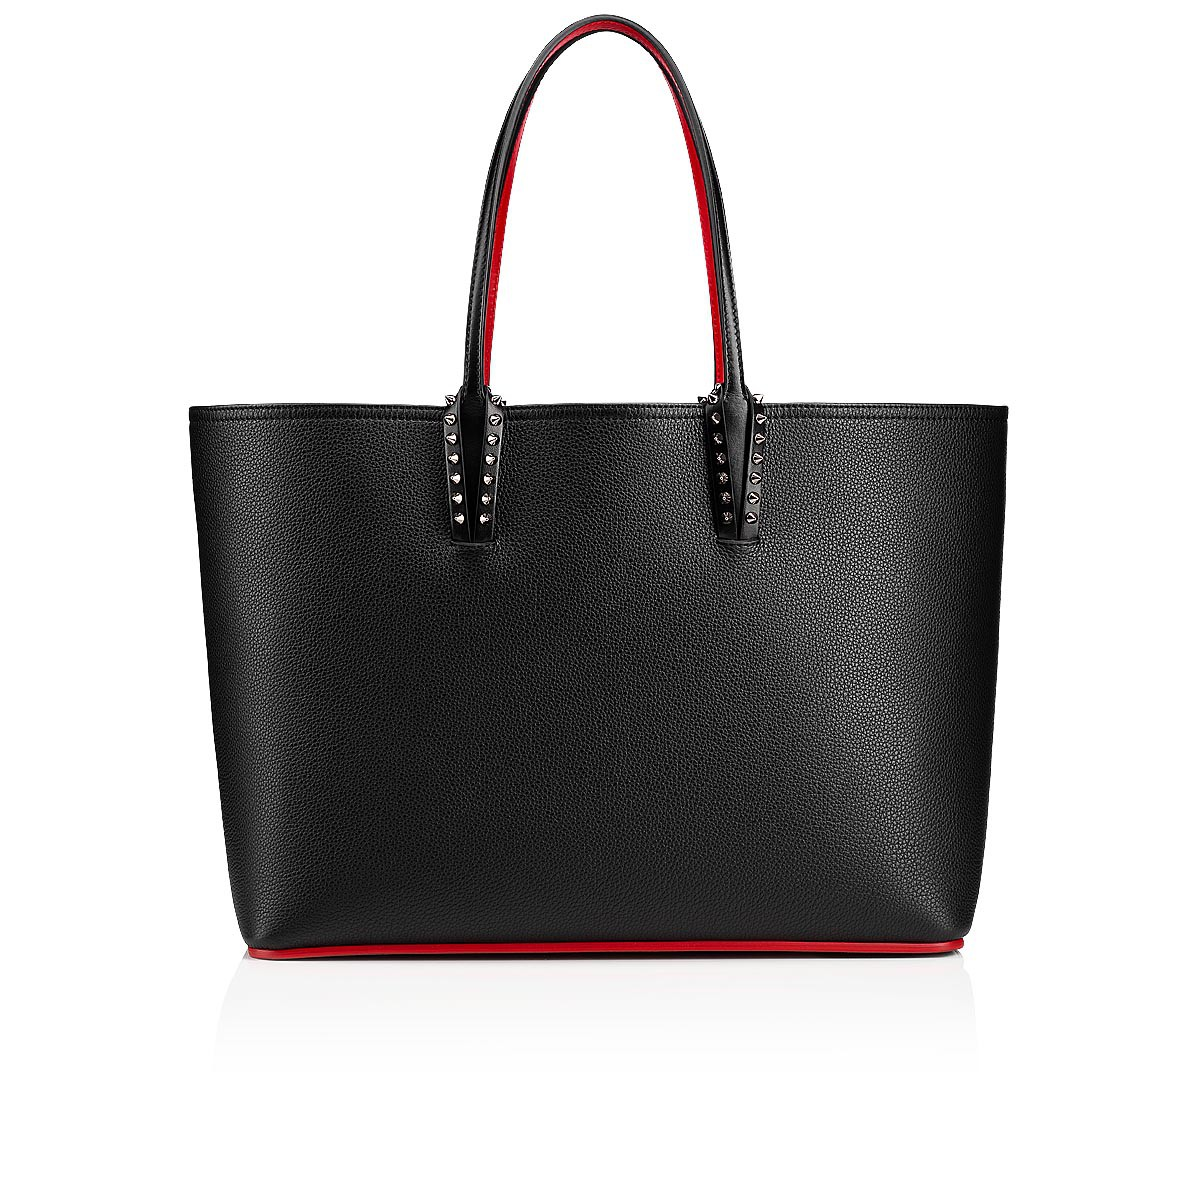 recognized brands running shoes best wholesaler CABATA TOTE BAG Black Calfskin - Handbags - Christian Louboutin